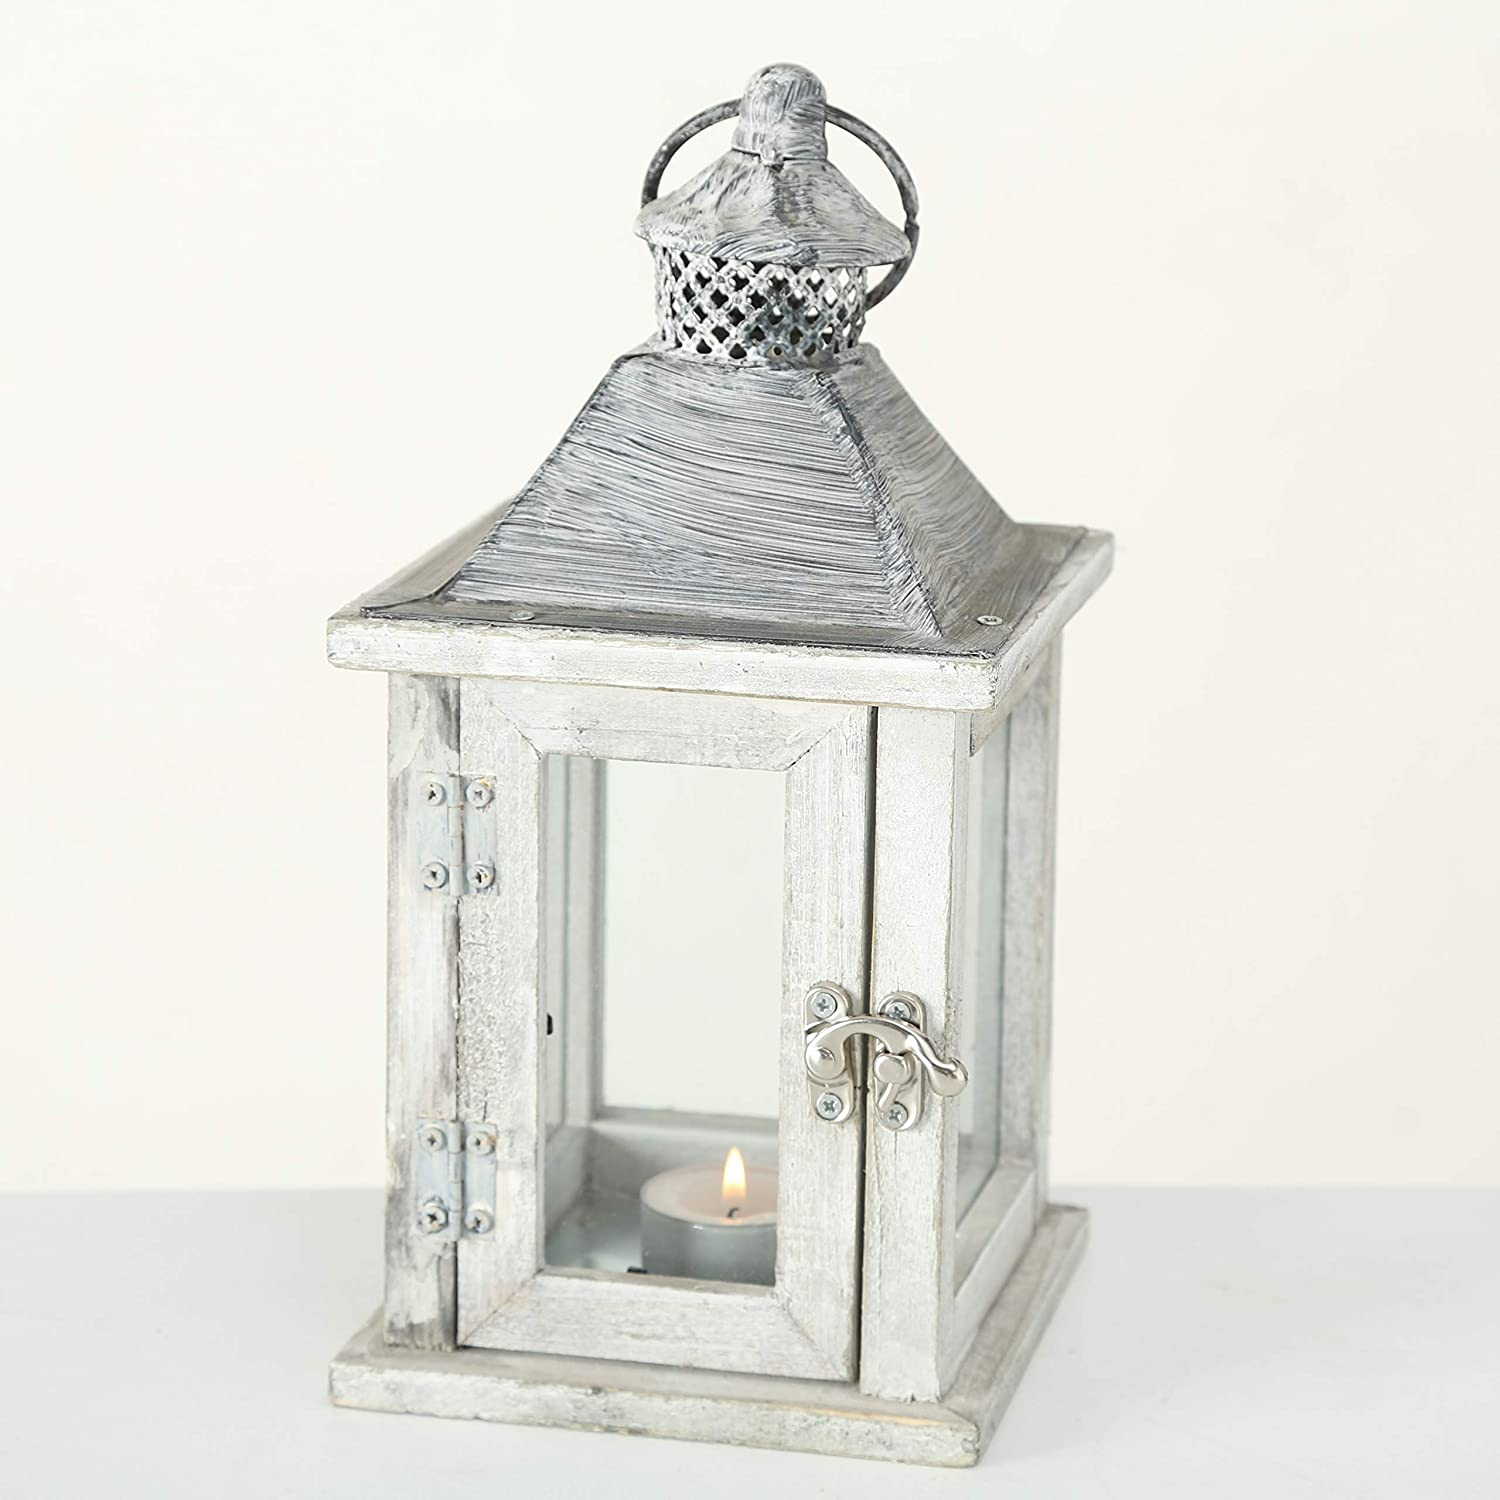 10 Inches Tall Galvanized Metal Floor Plate White Stained Fir WHW Whole House Worlds Farmers Market Wooden Candle Lantern Hurricane Rustic Dark Metal Roof Shabby Weathered Finish